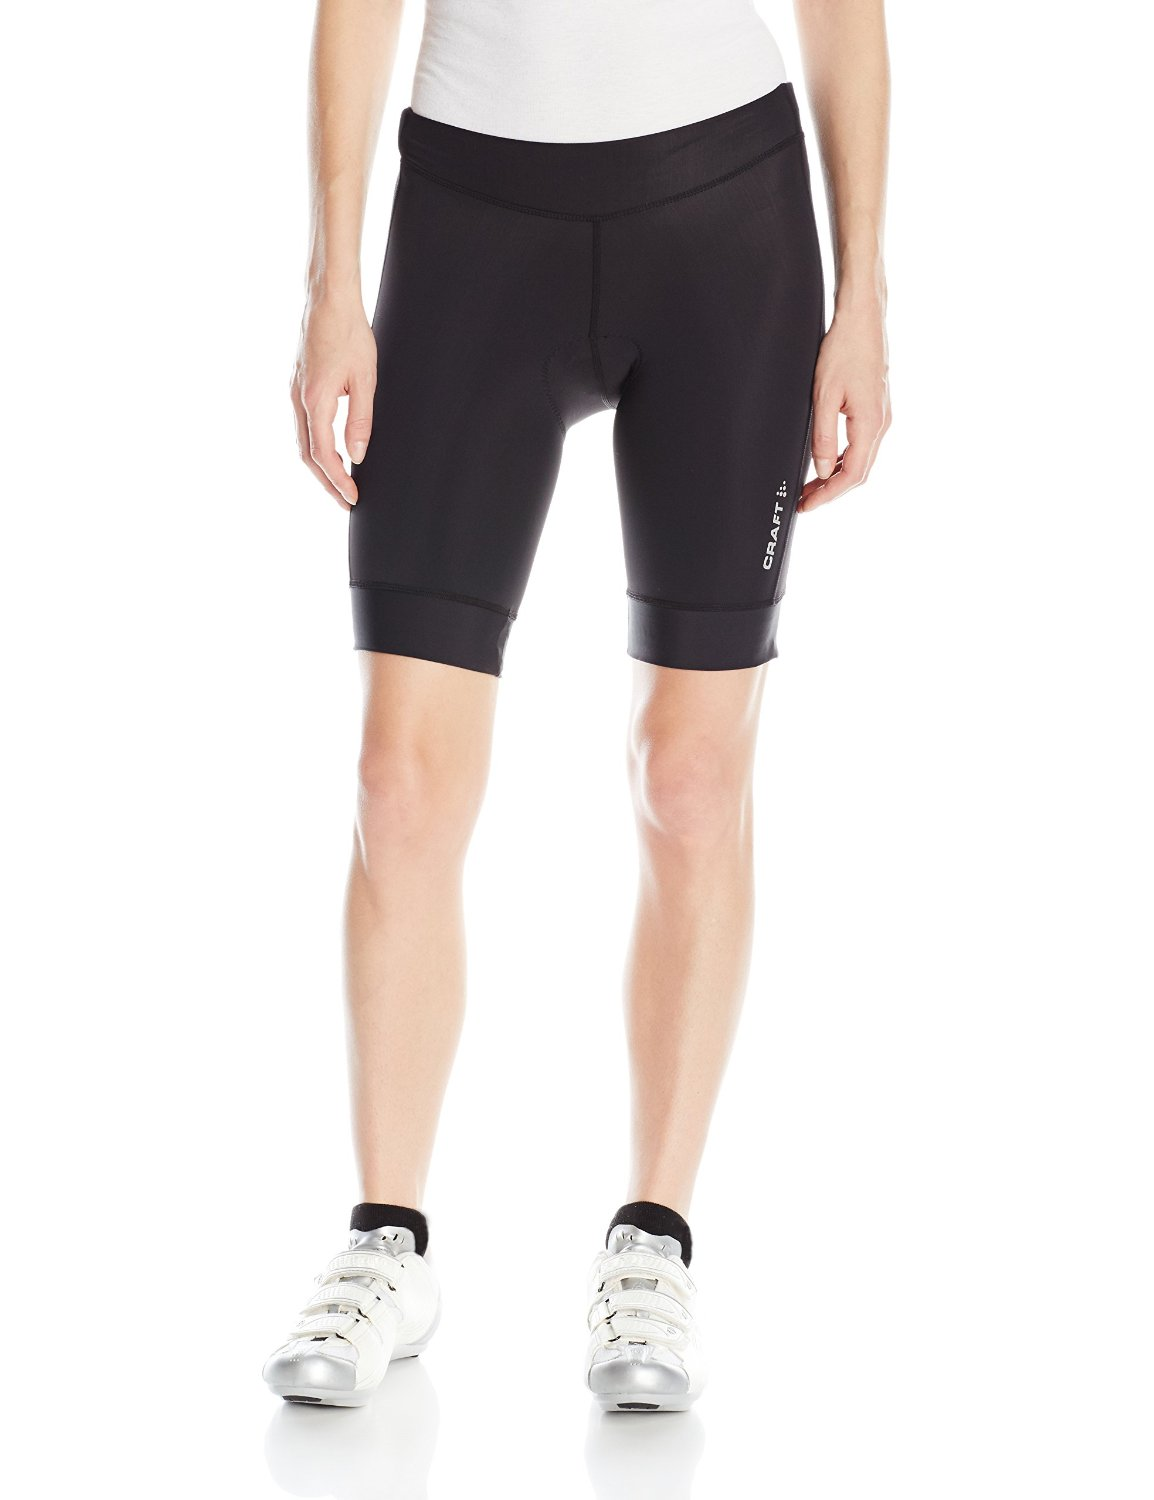 cd5d78263 Get Quotations · Craft Sportswear Women s Motion Bike Cycling with Chamois  Pad Reflective Compression Shorts  protective riding